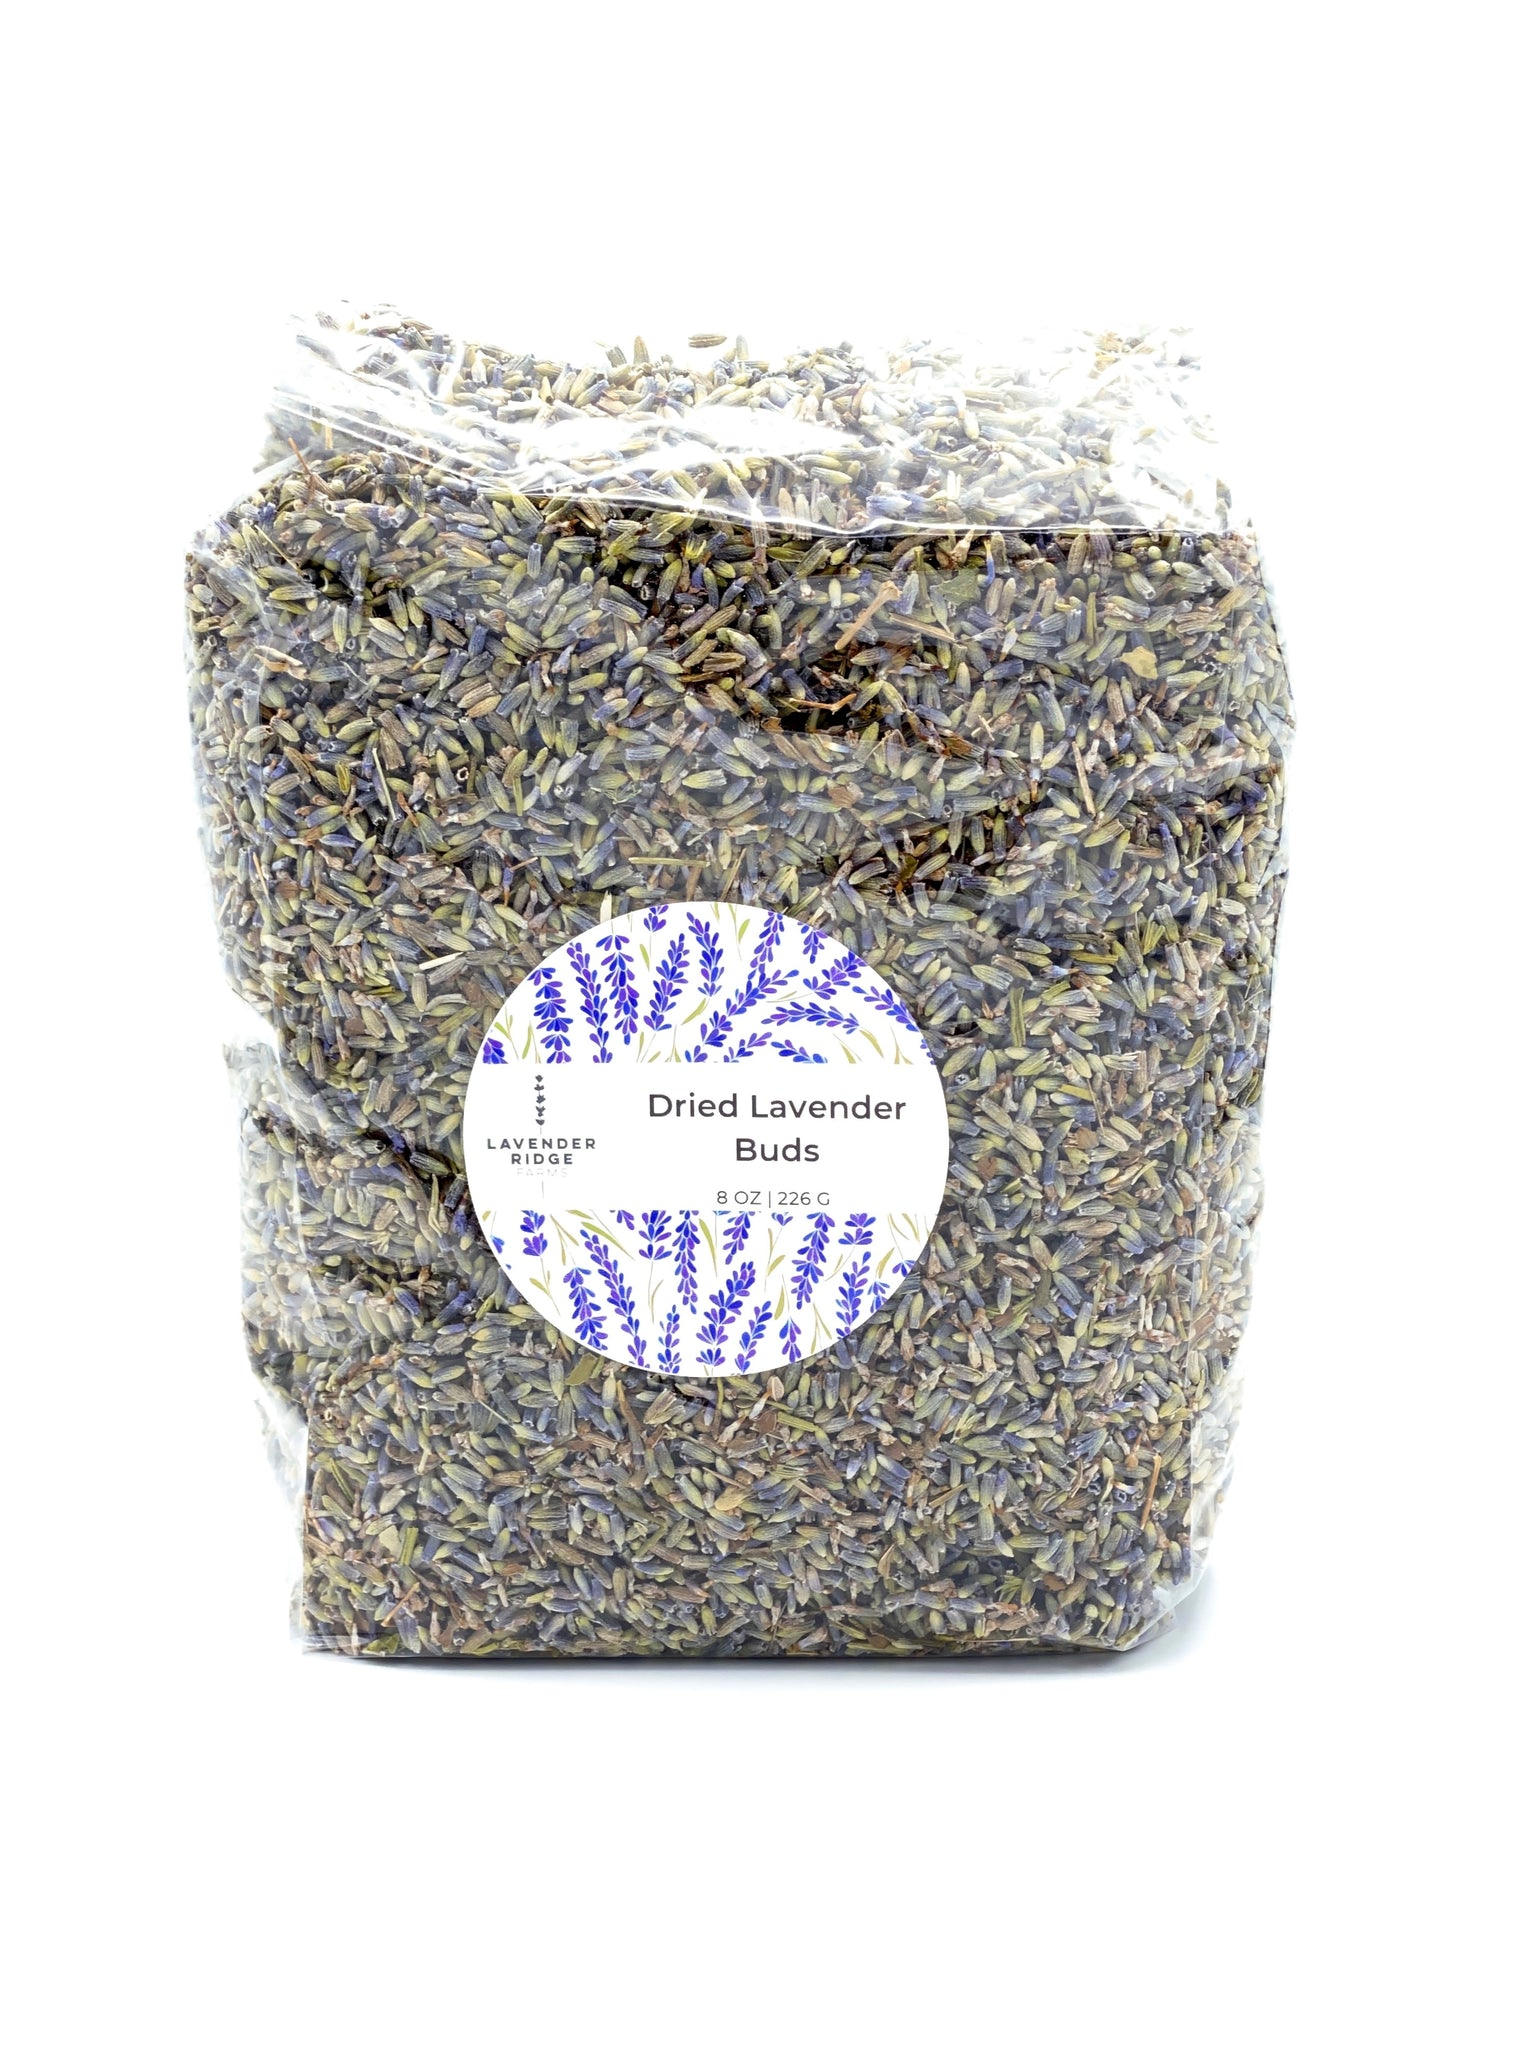 Dried Lavender Buds